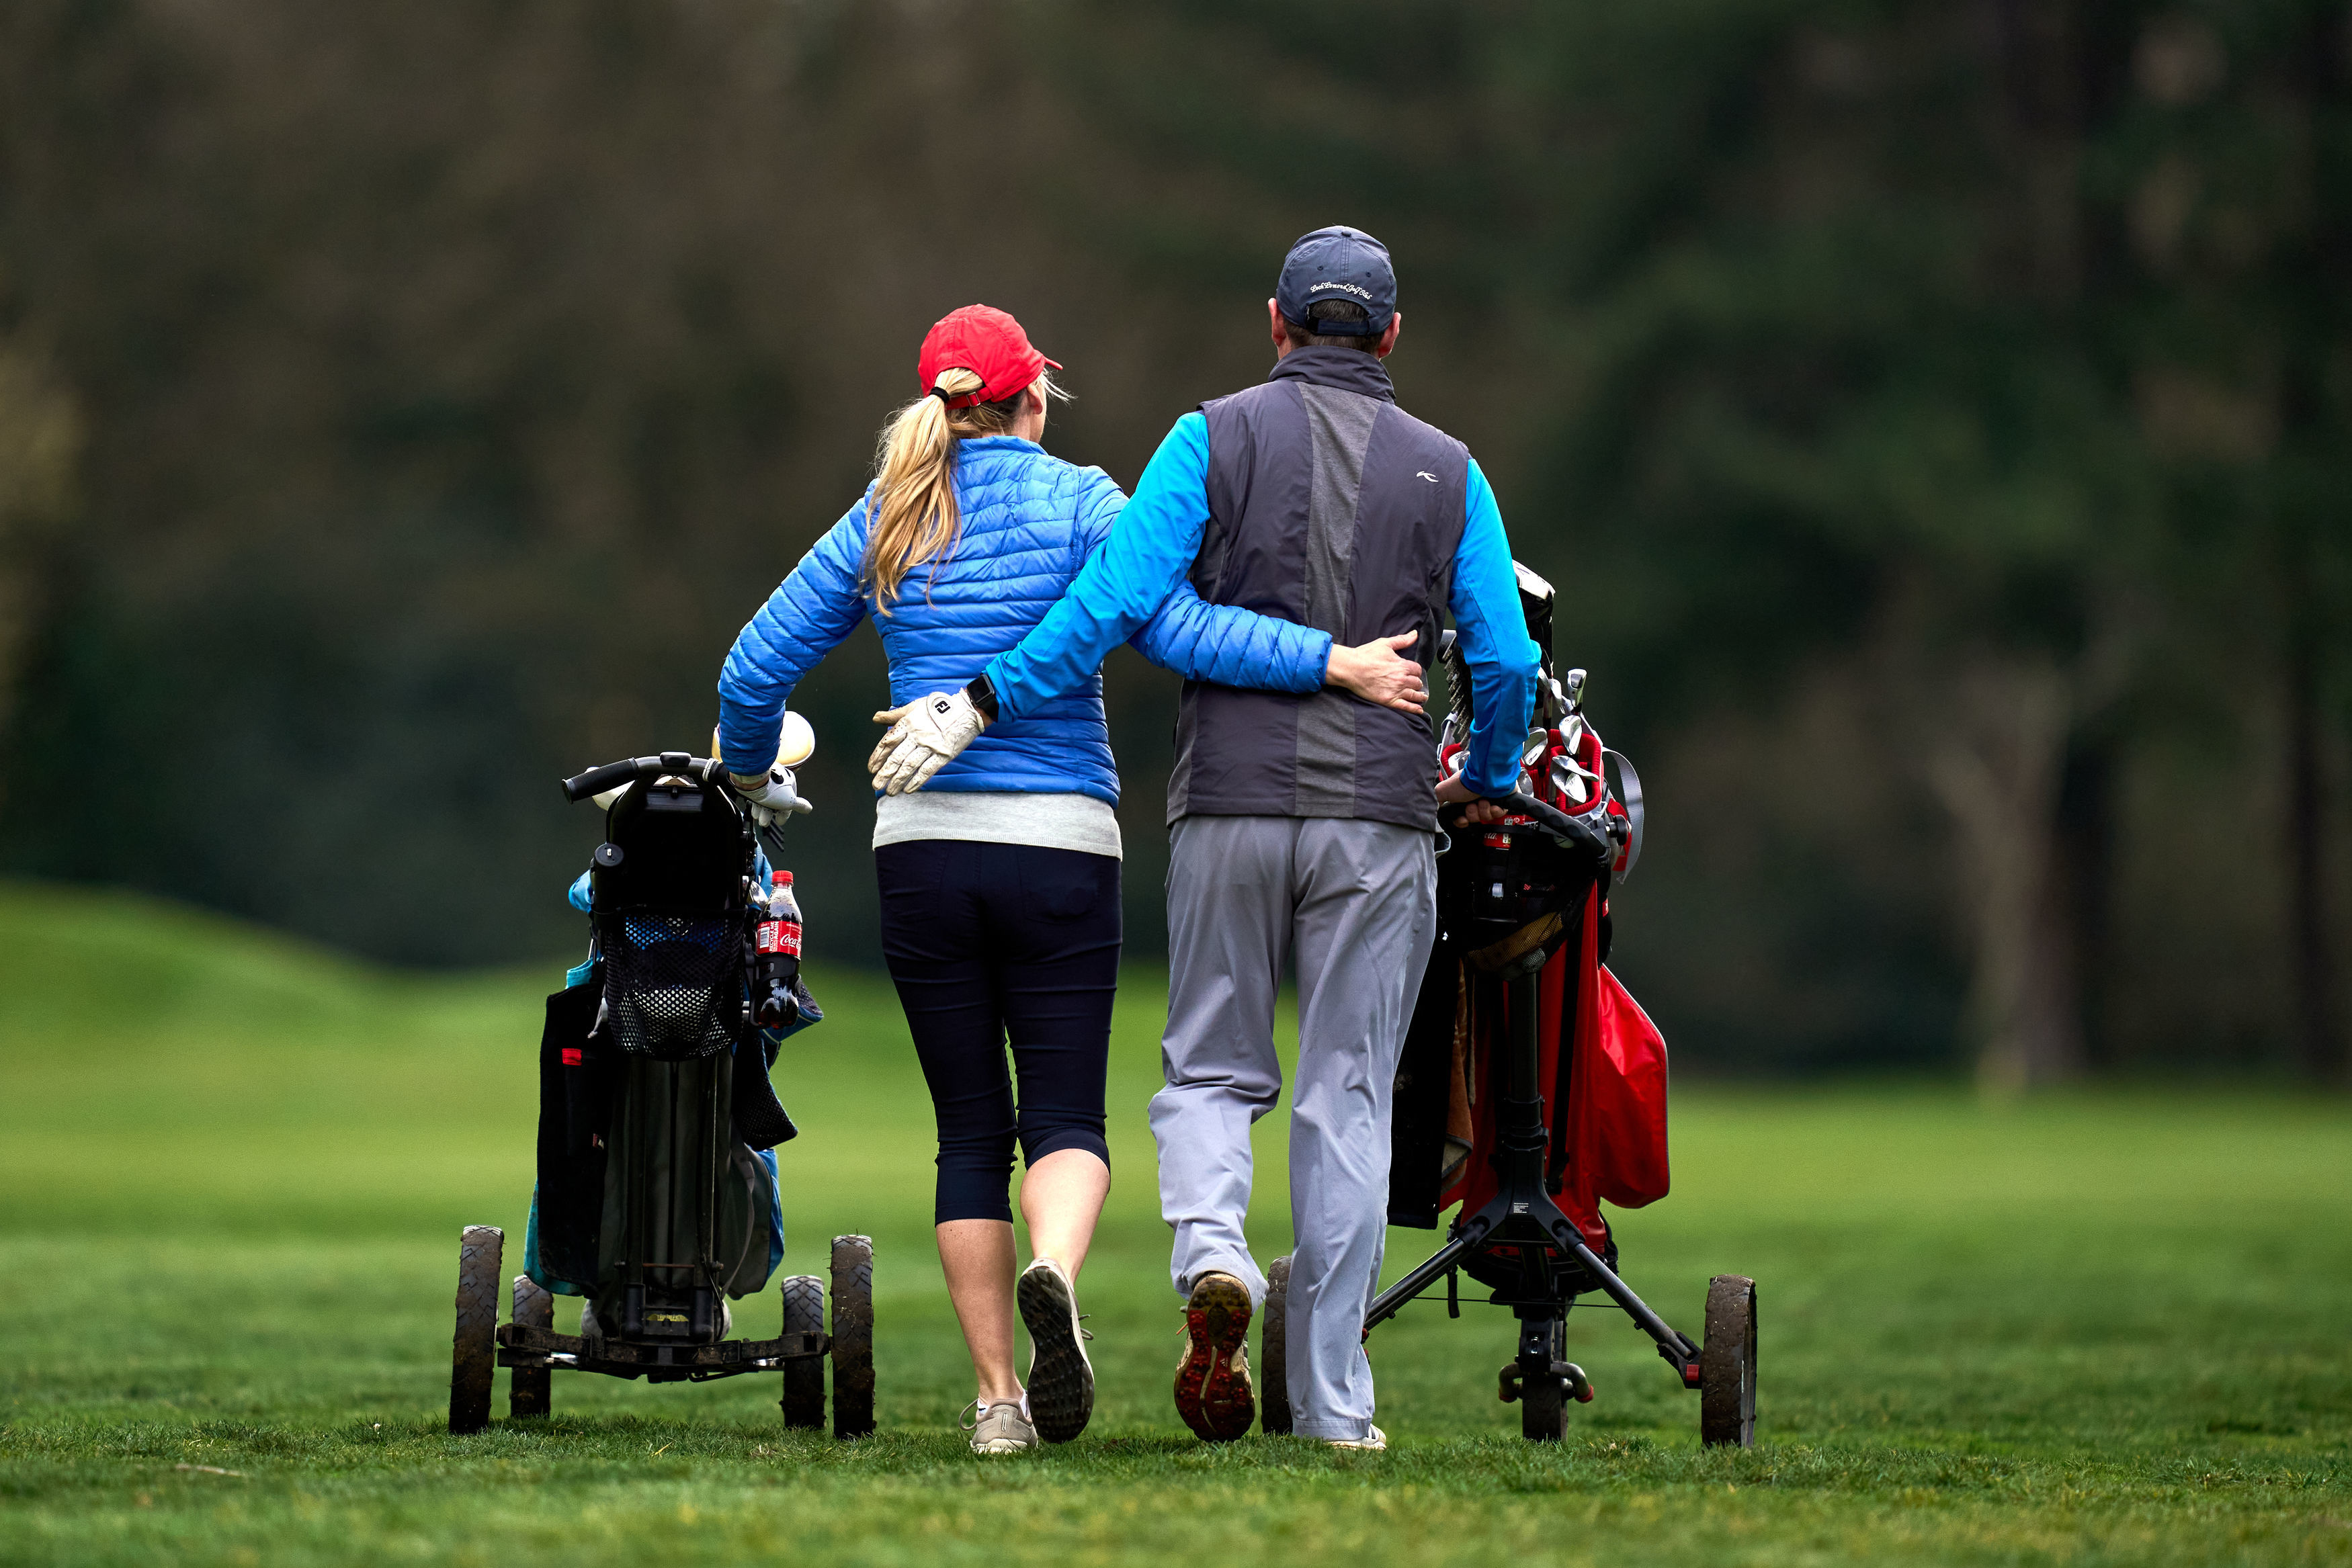 <p>Golfers at Royal Mid-Surrey Golf Club, Richmond, following the easing of England's lockdown to allow far greater freedom outdoors. Picture date: Monday March 29, 2021.</p>